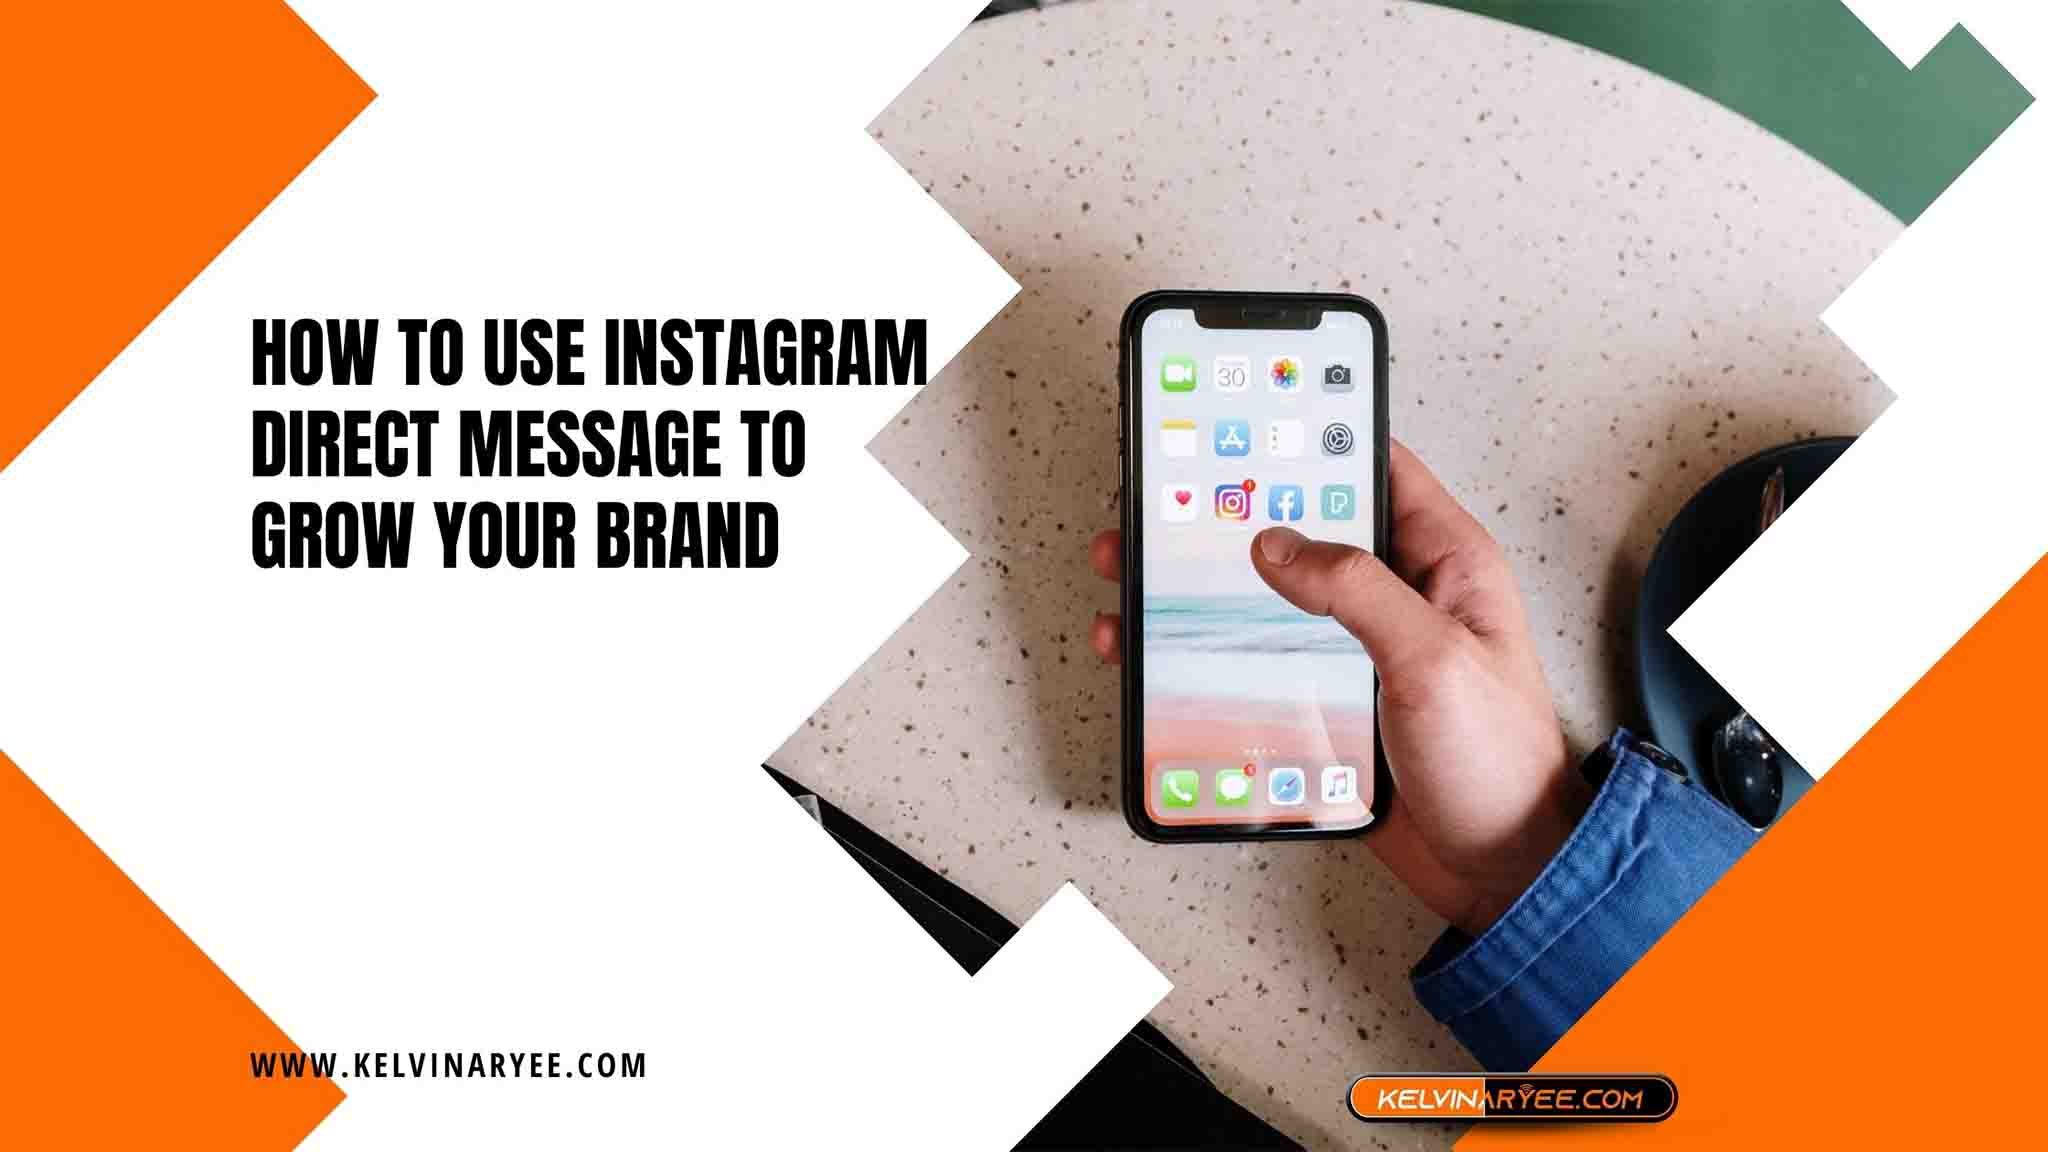 How To Use Instagram Direct Message To Grow Your Brand